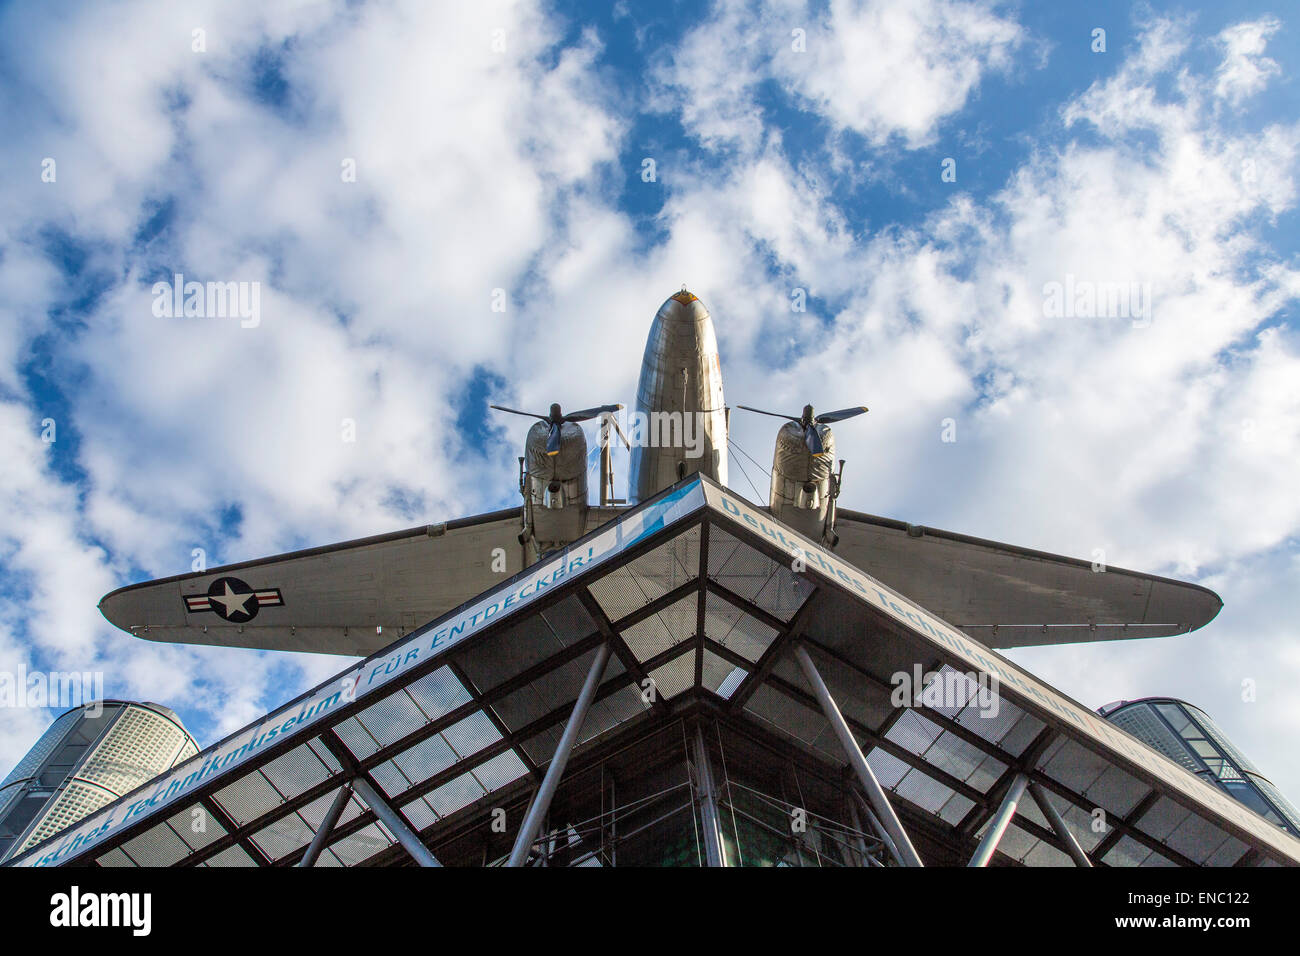 Facade of the German Museum of Technology, DC-3 aircraft, Berlin, - Stock Image